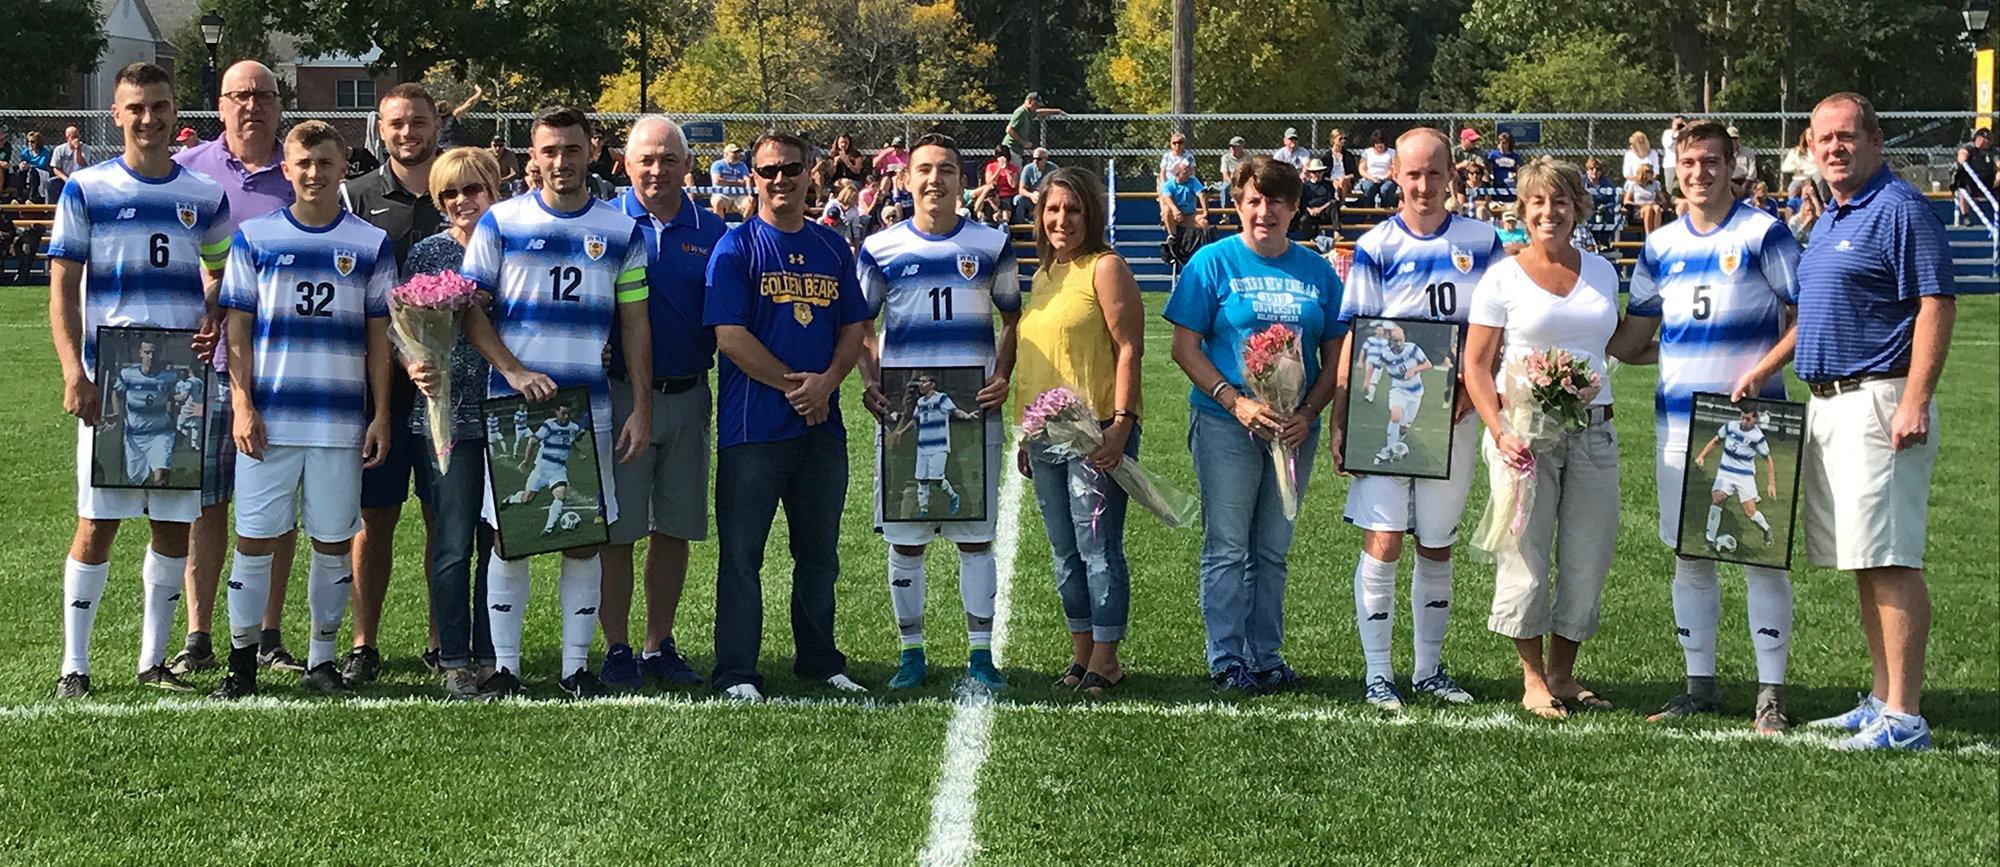 Remillard and Pingree Lead Golden Bears to 4-1 Victory over Nichols on Senior Day